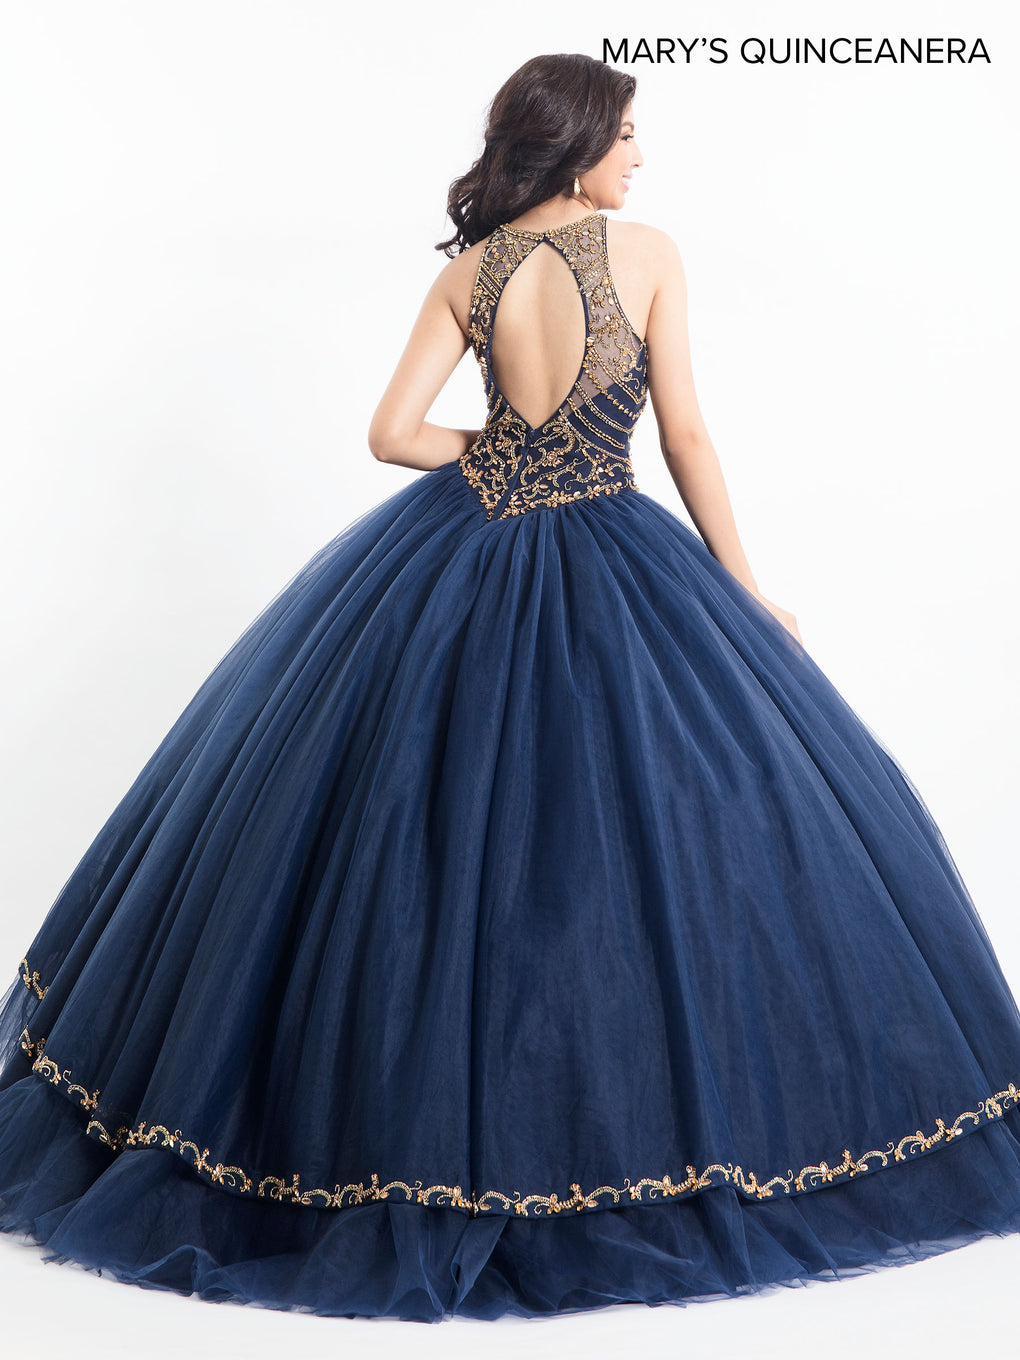 Marys Quinceanera Dresses in Champagne, Navy, or Blush Color